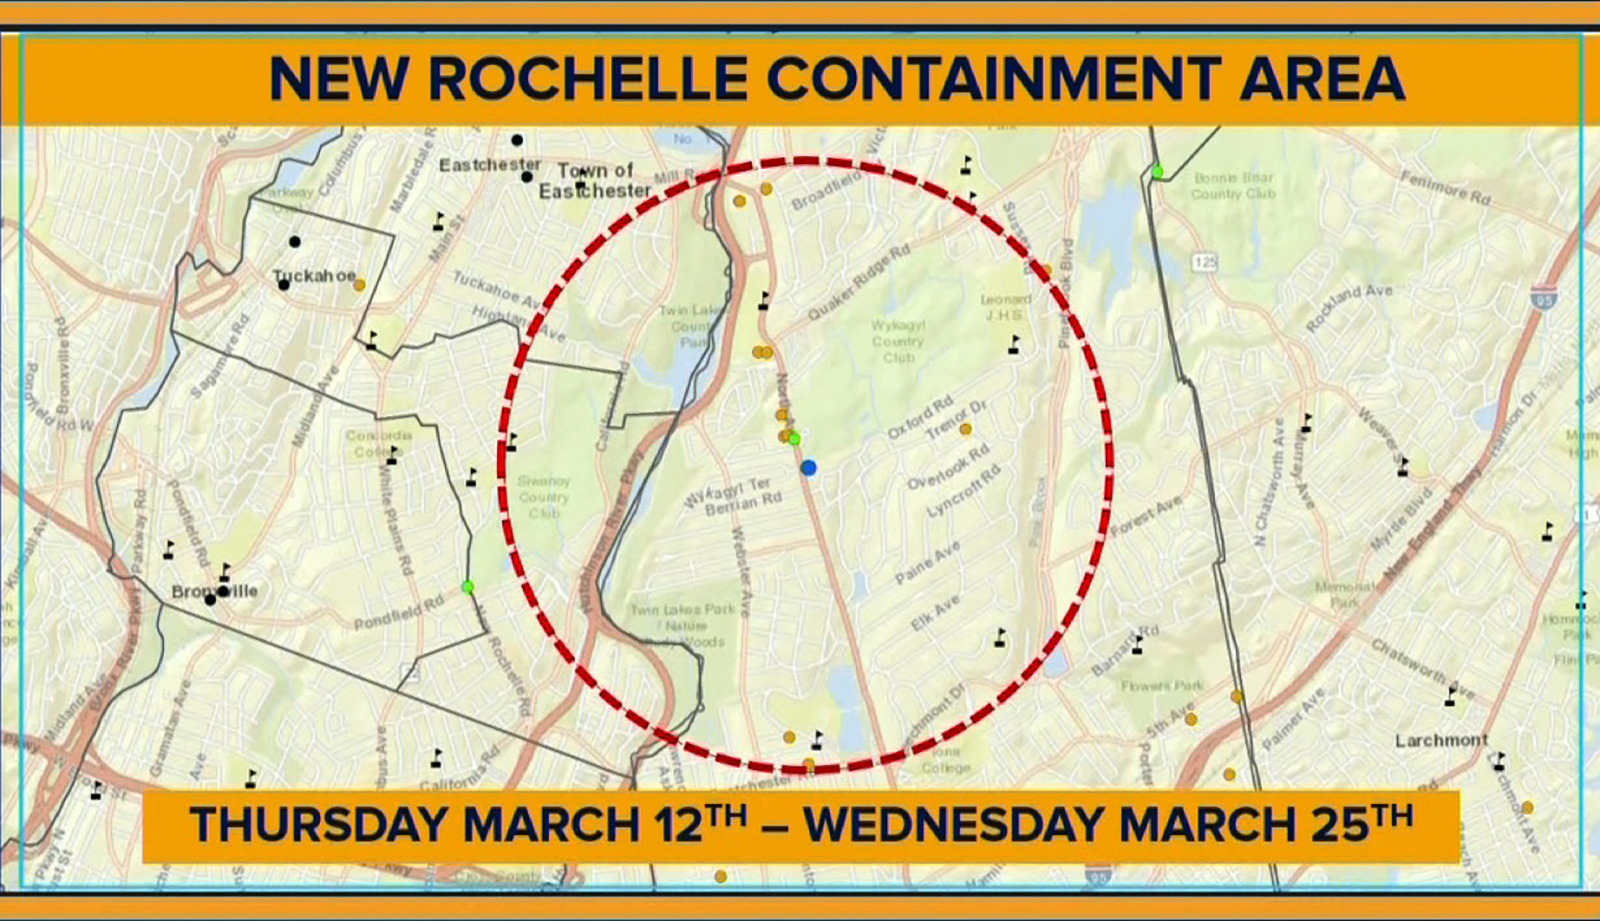 Schools And Facilities Will Close For 2 Weeks In This 1 Mile Containment Area In A New York City Suburb